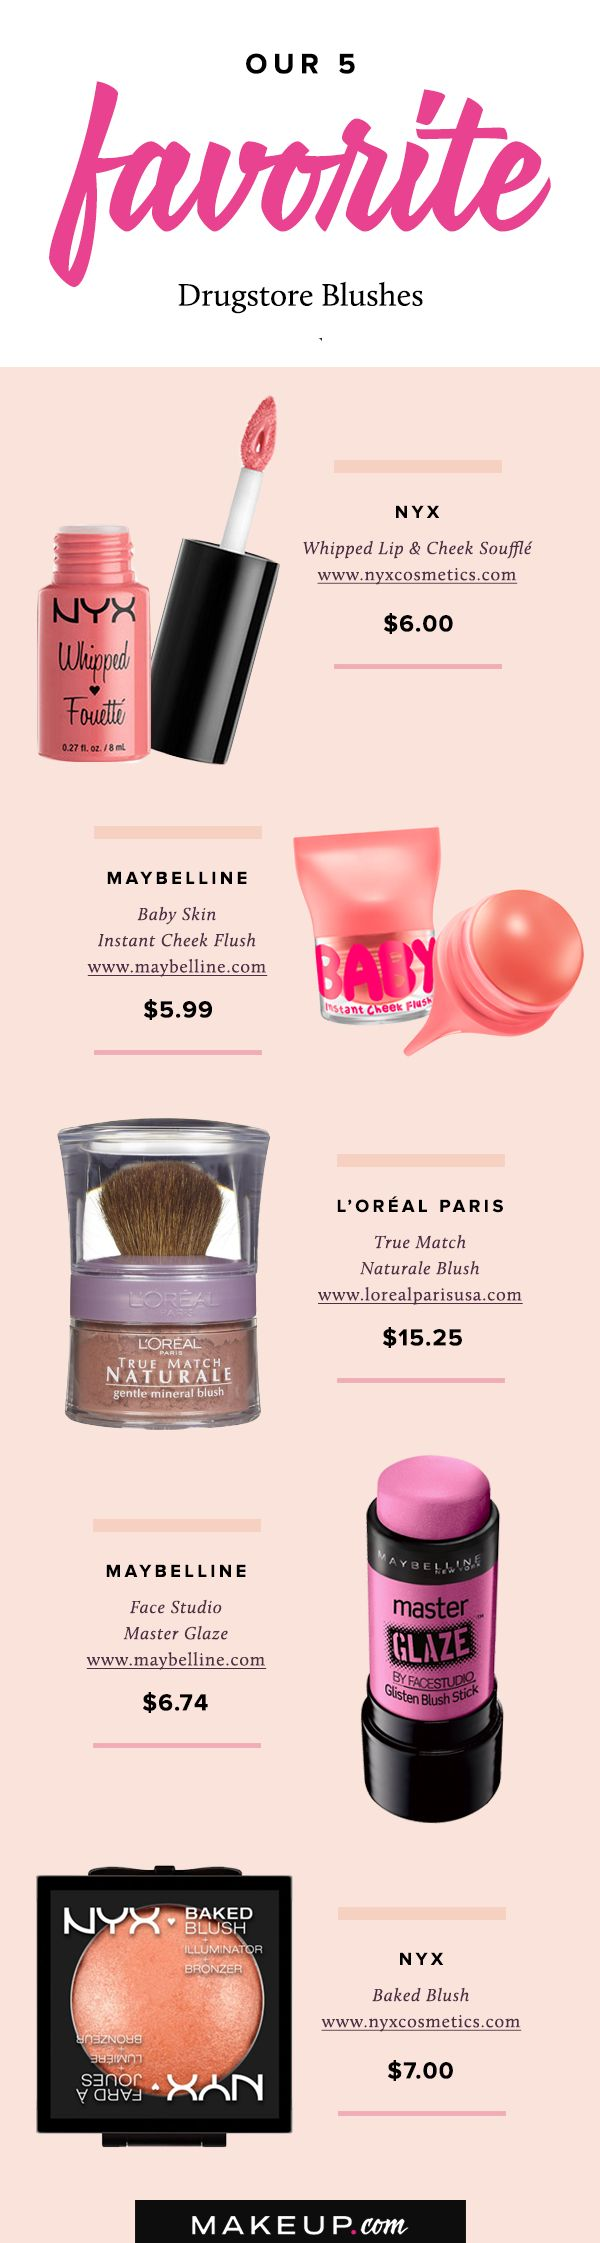 Blush is making a big comeback in the beauty world, and  lucky for us, some of the best blushes can be found at the drugstore. From makeup by NYX to classic blushes from Maybelline, we've rounded up the best product picks to add a pop of color to your cheeks.